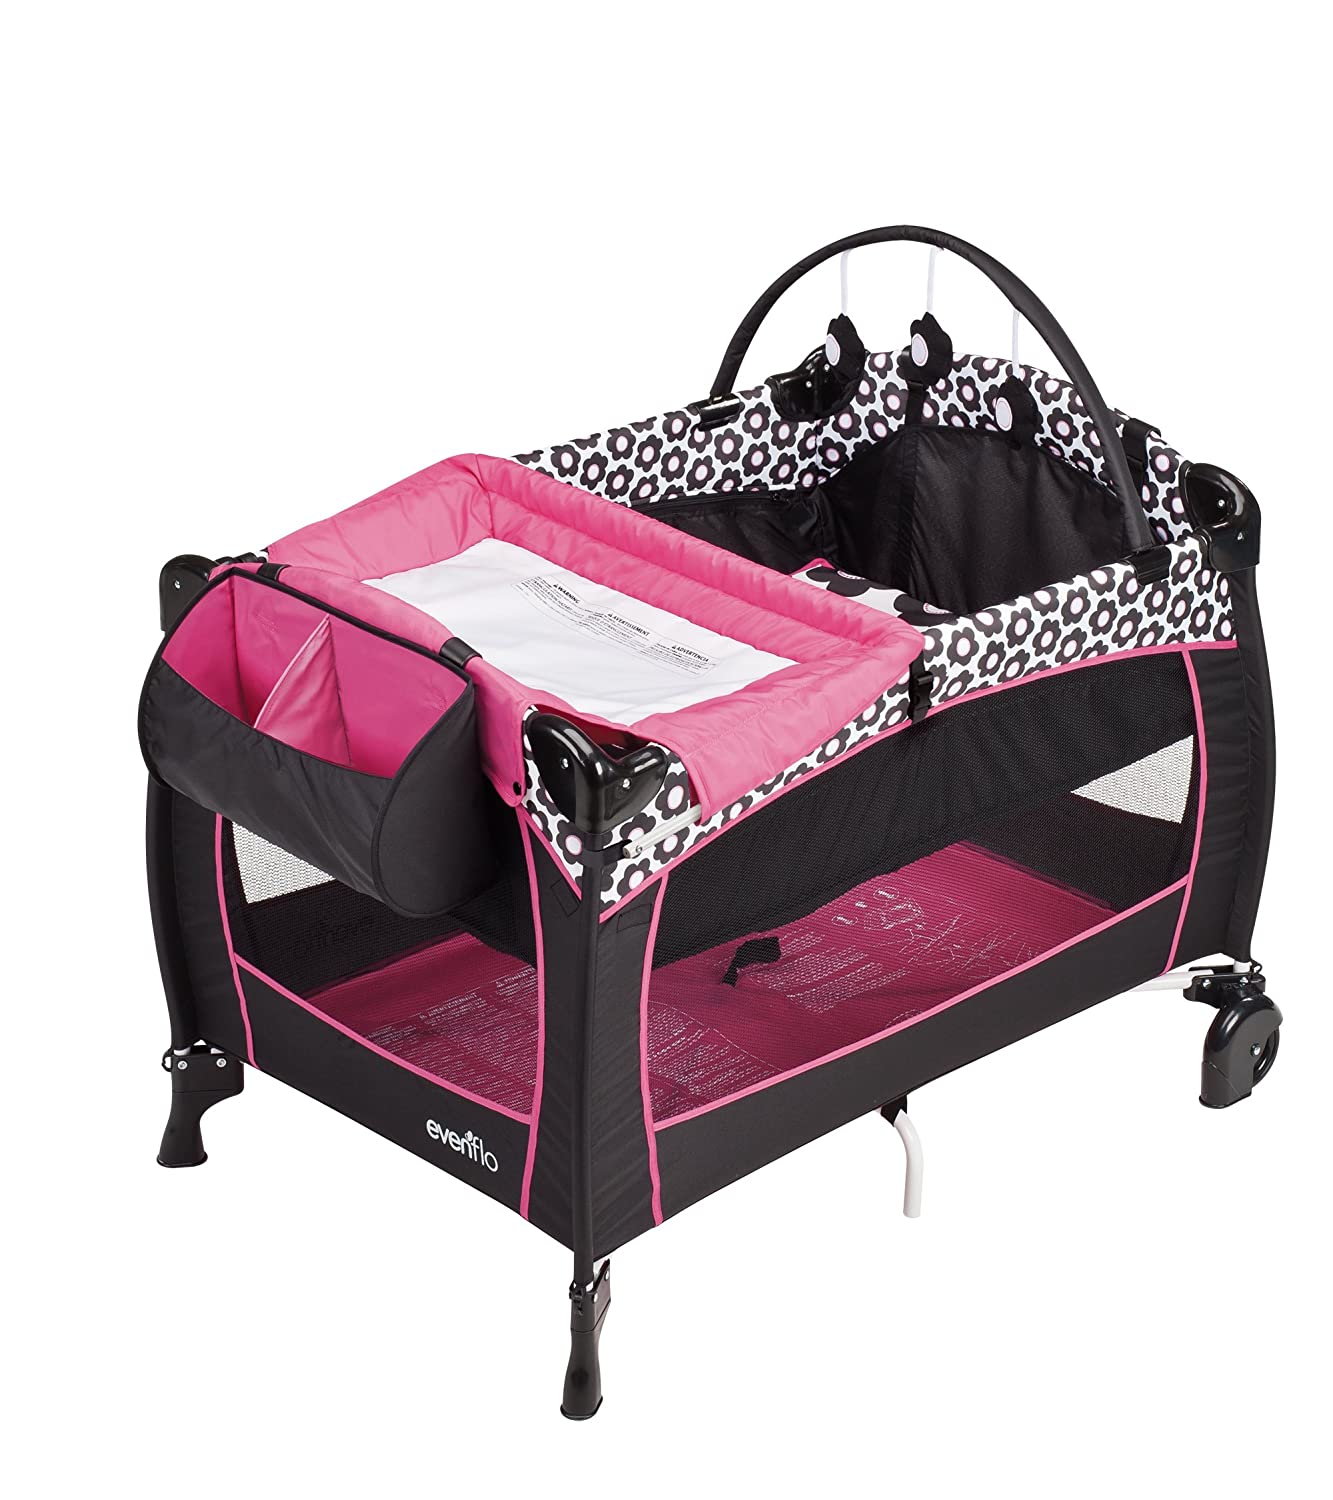 Baby crib playard - Amazon Com Evenflo Portable Babysuite 300 Marianna Playards Baby